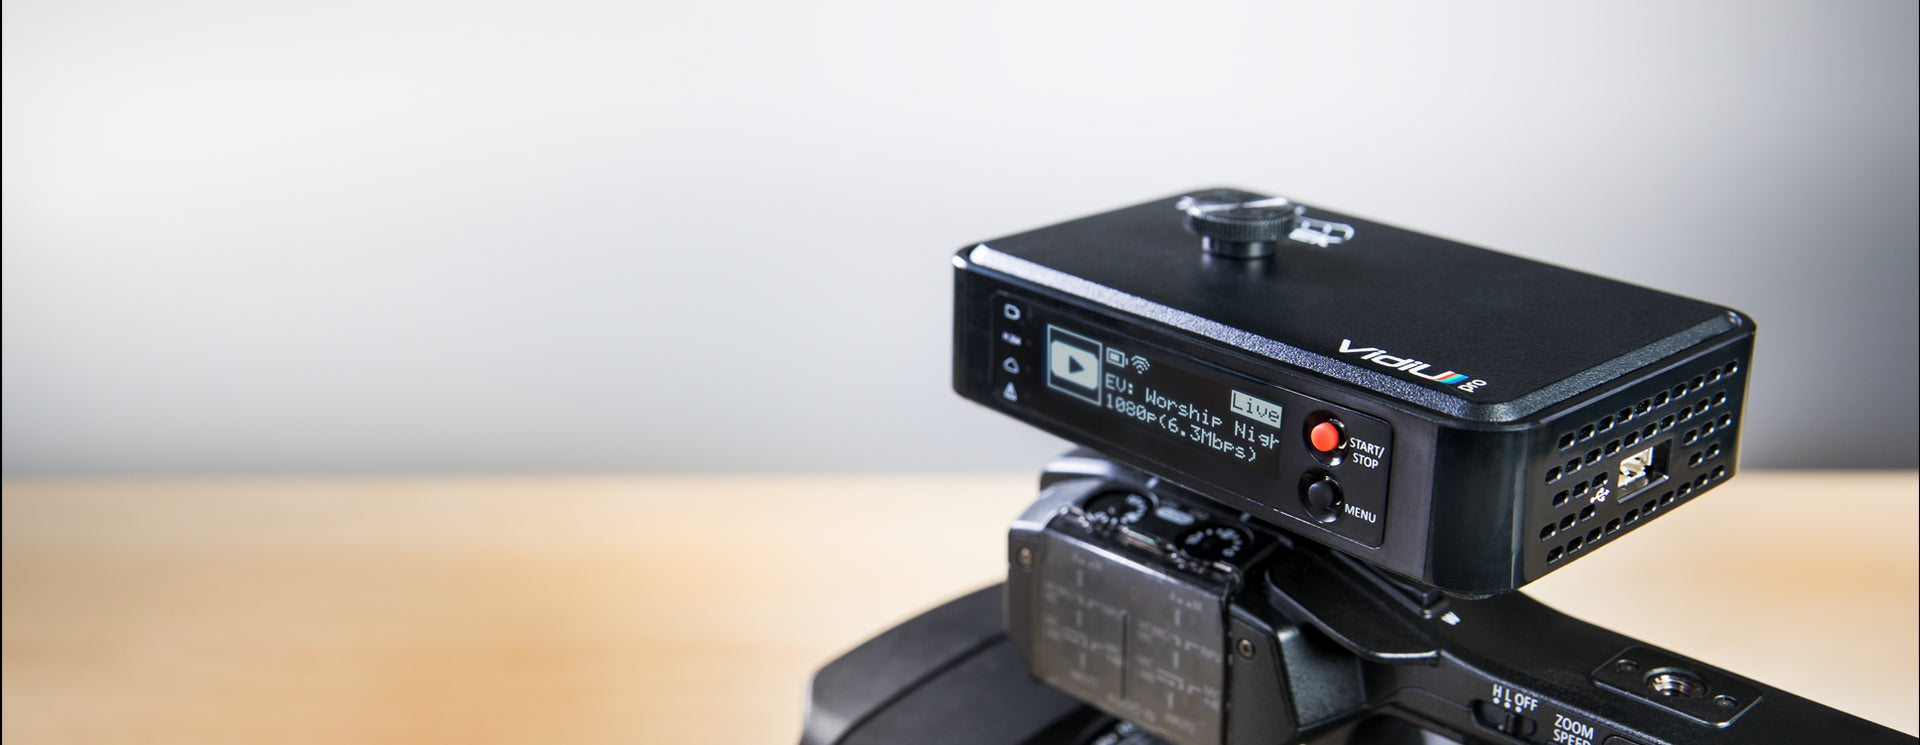 Stream to Facebook Live, YouTube, Periscope, and more – Teradek ...